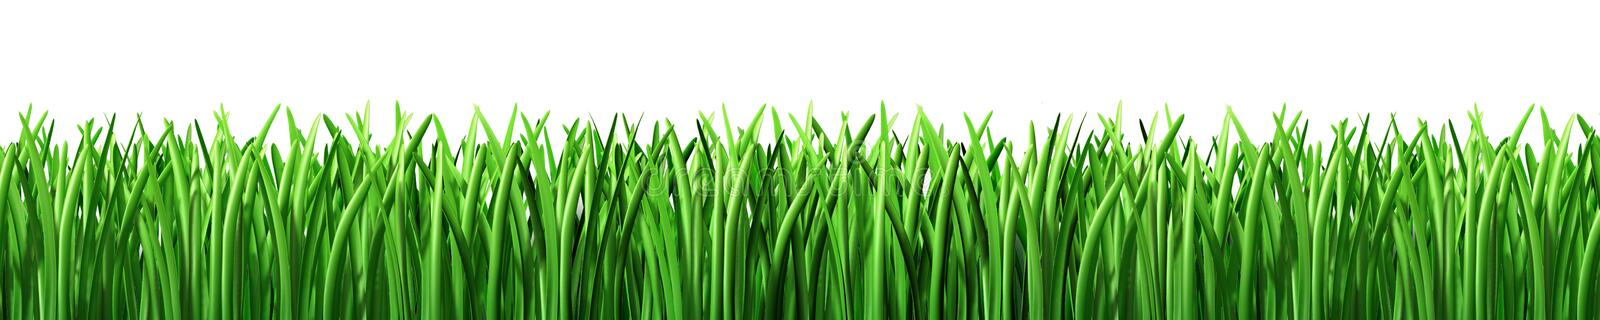 Grass green lawn isolated vector illustration